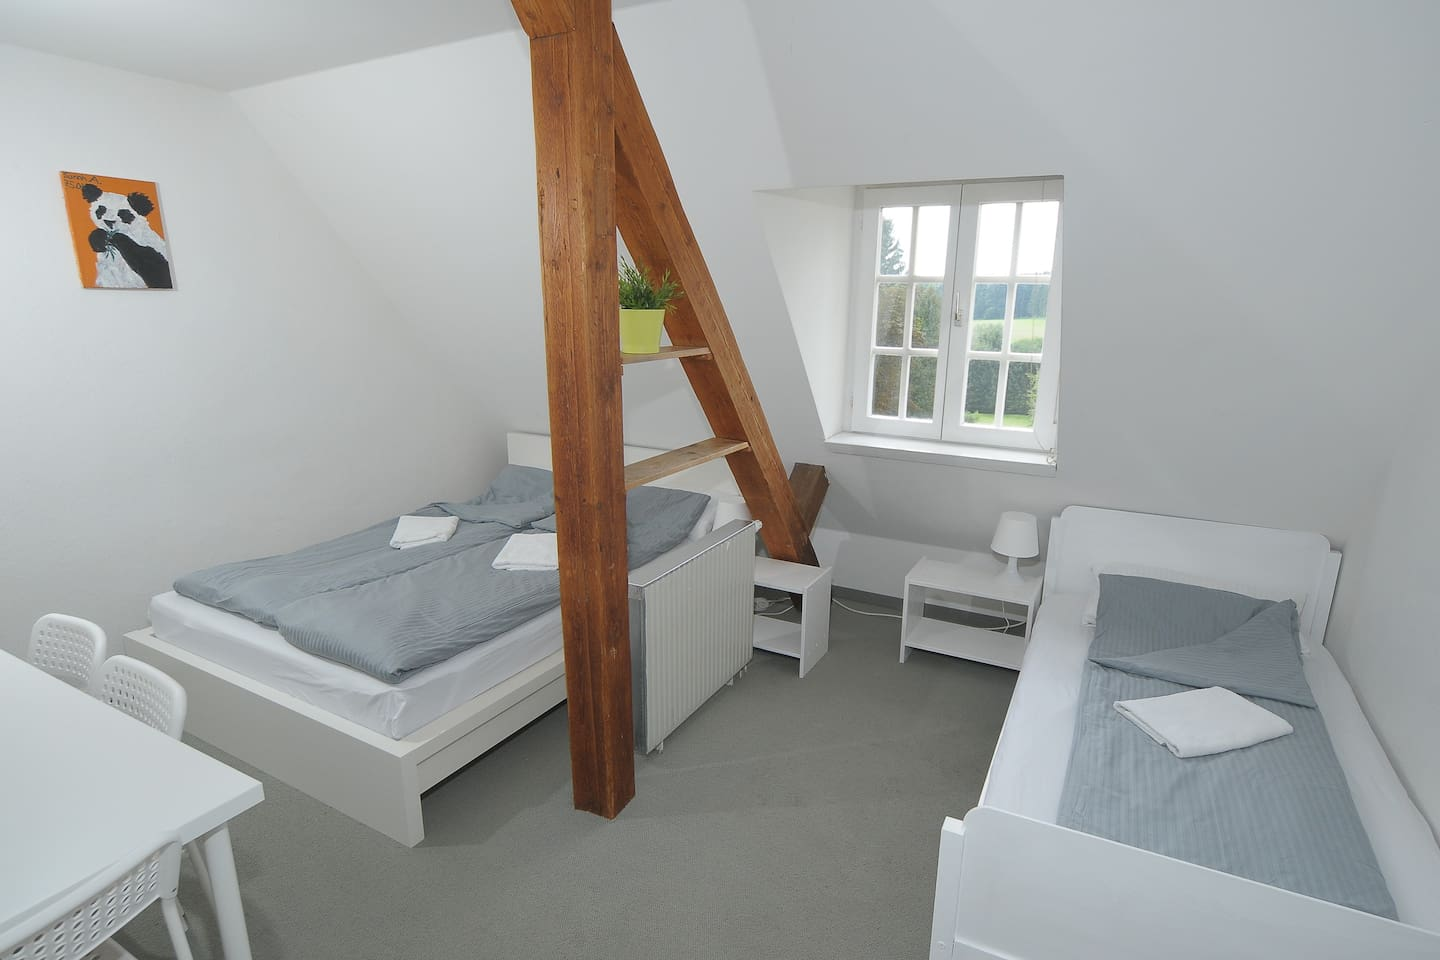 205 - double bed and single bed (can be removed, if only 1-2 persons), with a great view to the south